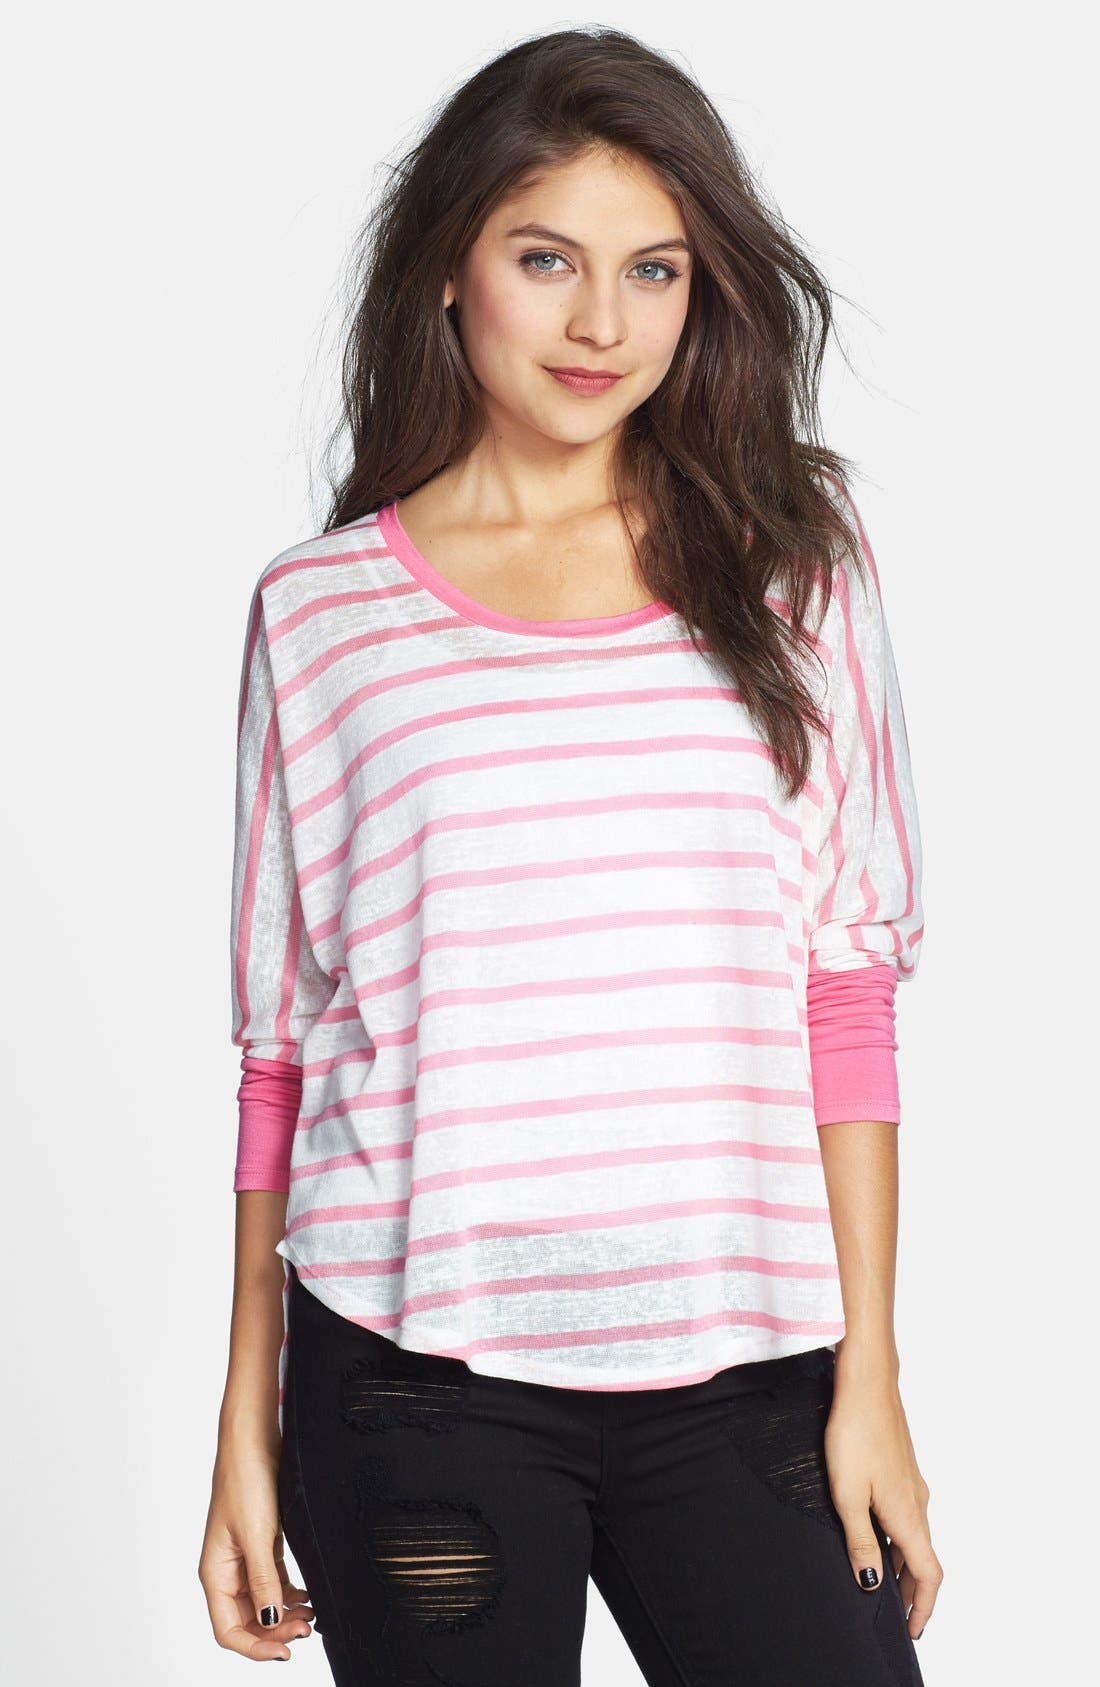 Alternate Image 1 Selected - Mimi Chica Stripe Burnout Dolman Tee (Juniors) (Online Only)